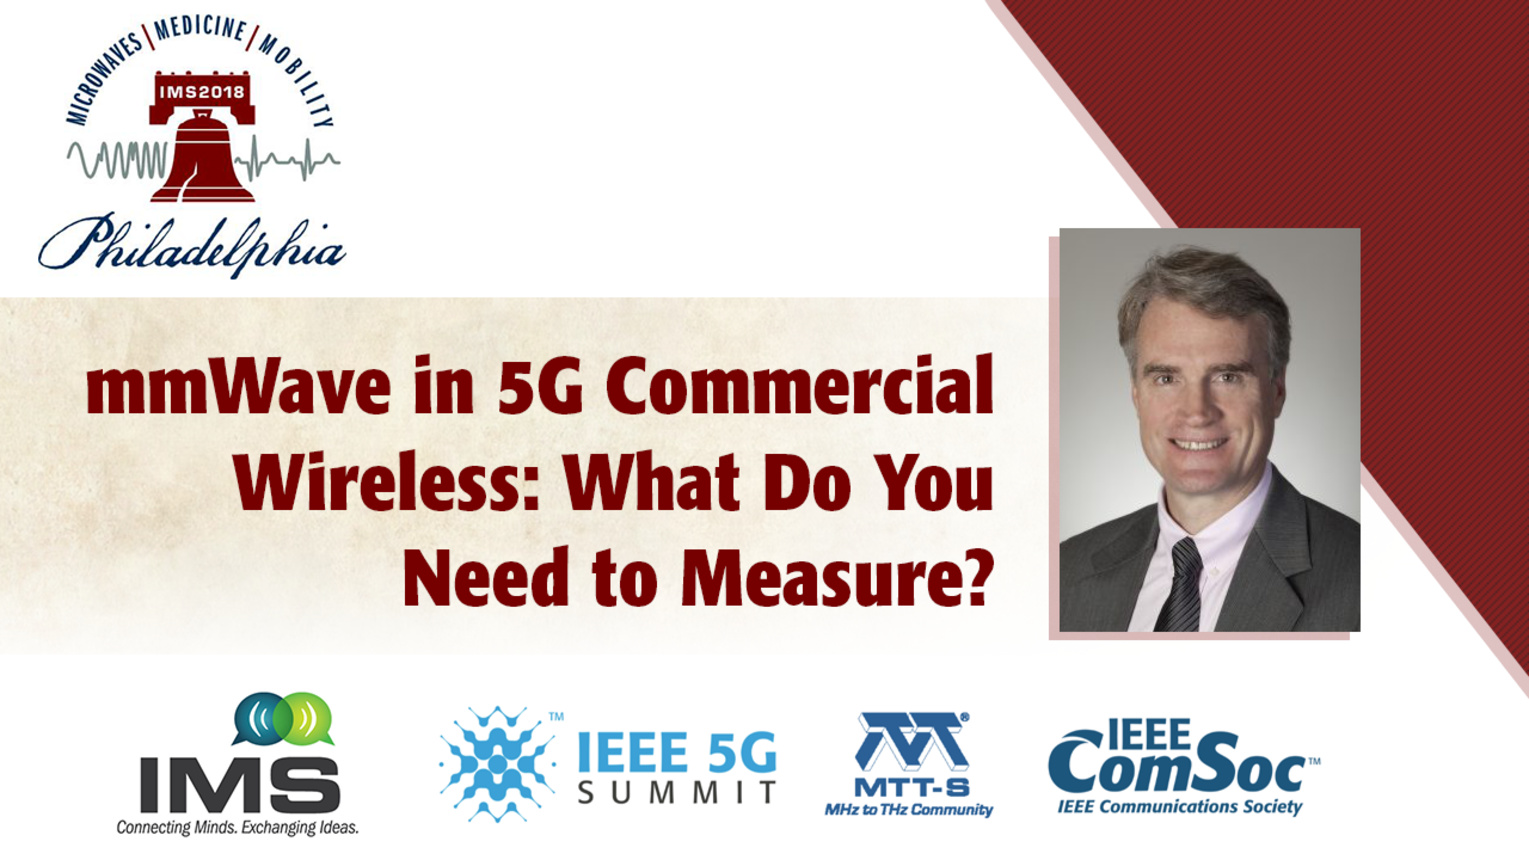 'mmWave in 5G Commercial Wireless: What Do You Need to Measure?'